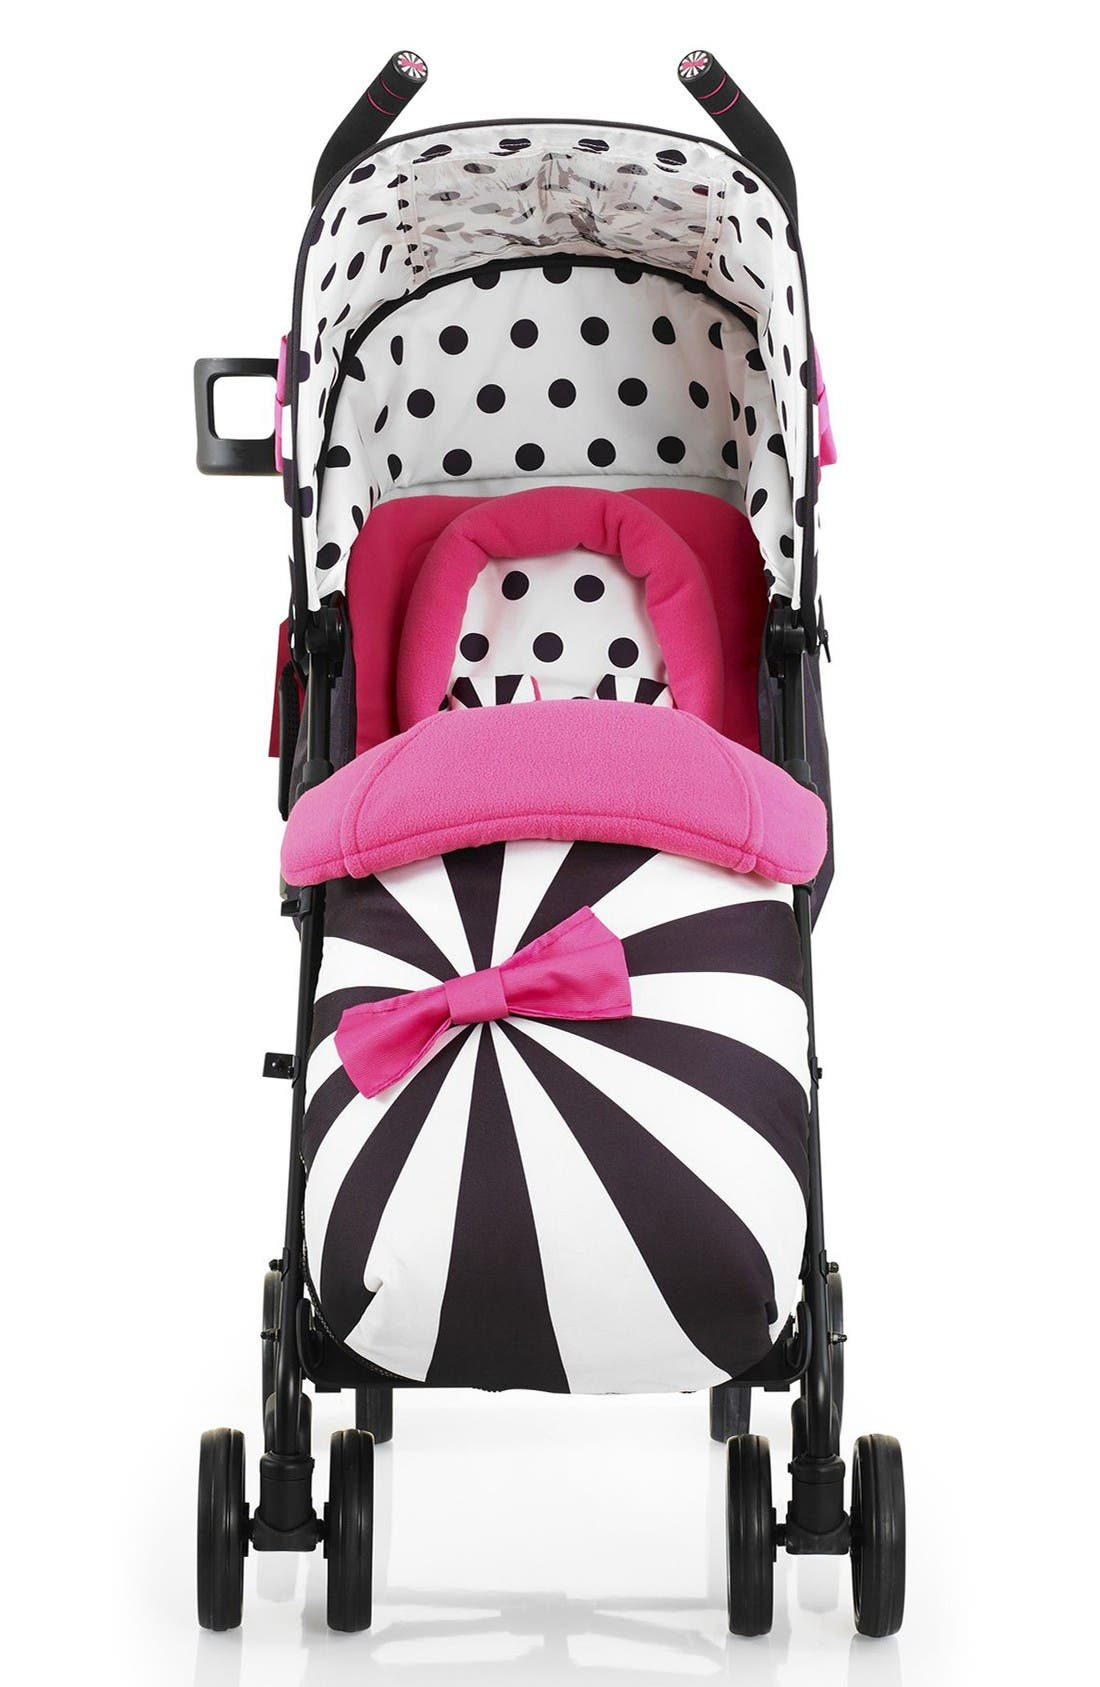 Alternate Image 1 Selected - Cosatto Supa Golightly 2 Stroller